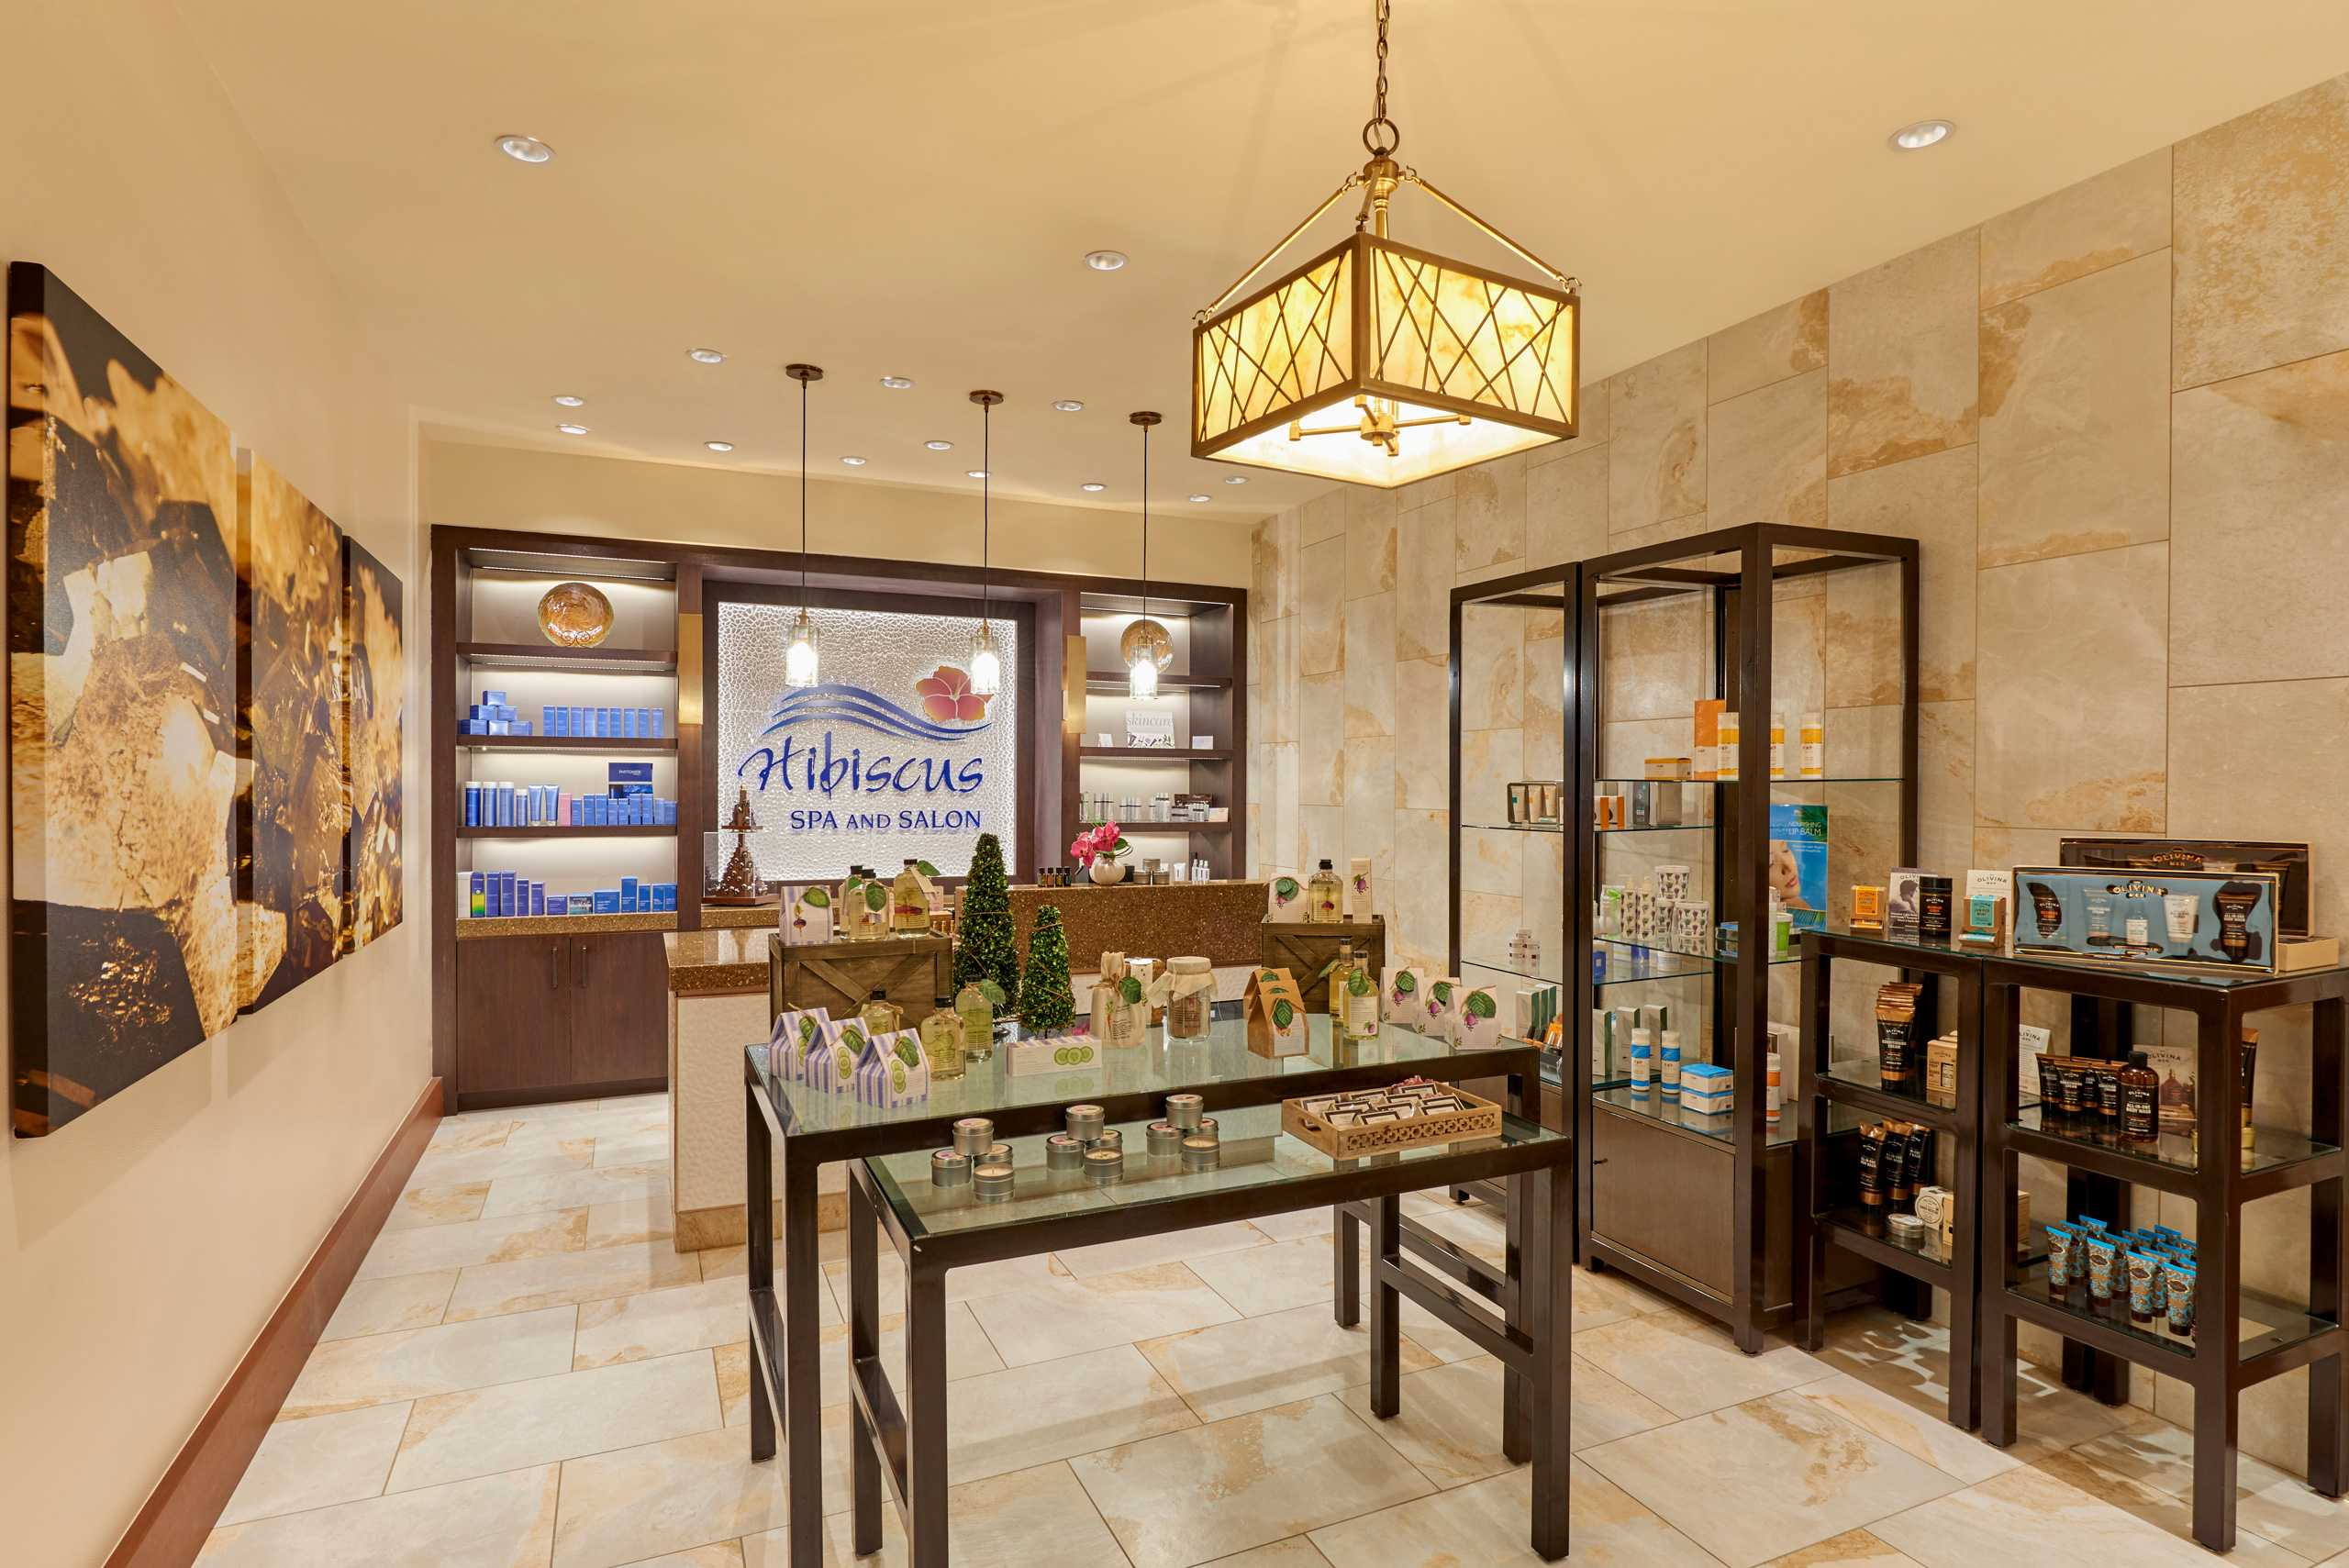 The Hibiscus Spa and Salon at The Westin Hotel and Spa in Las Vegas